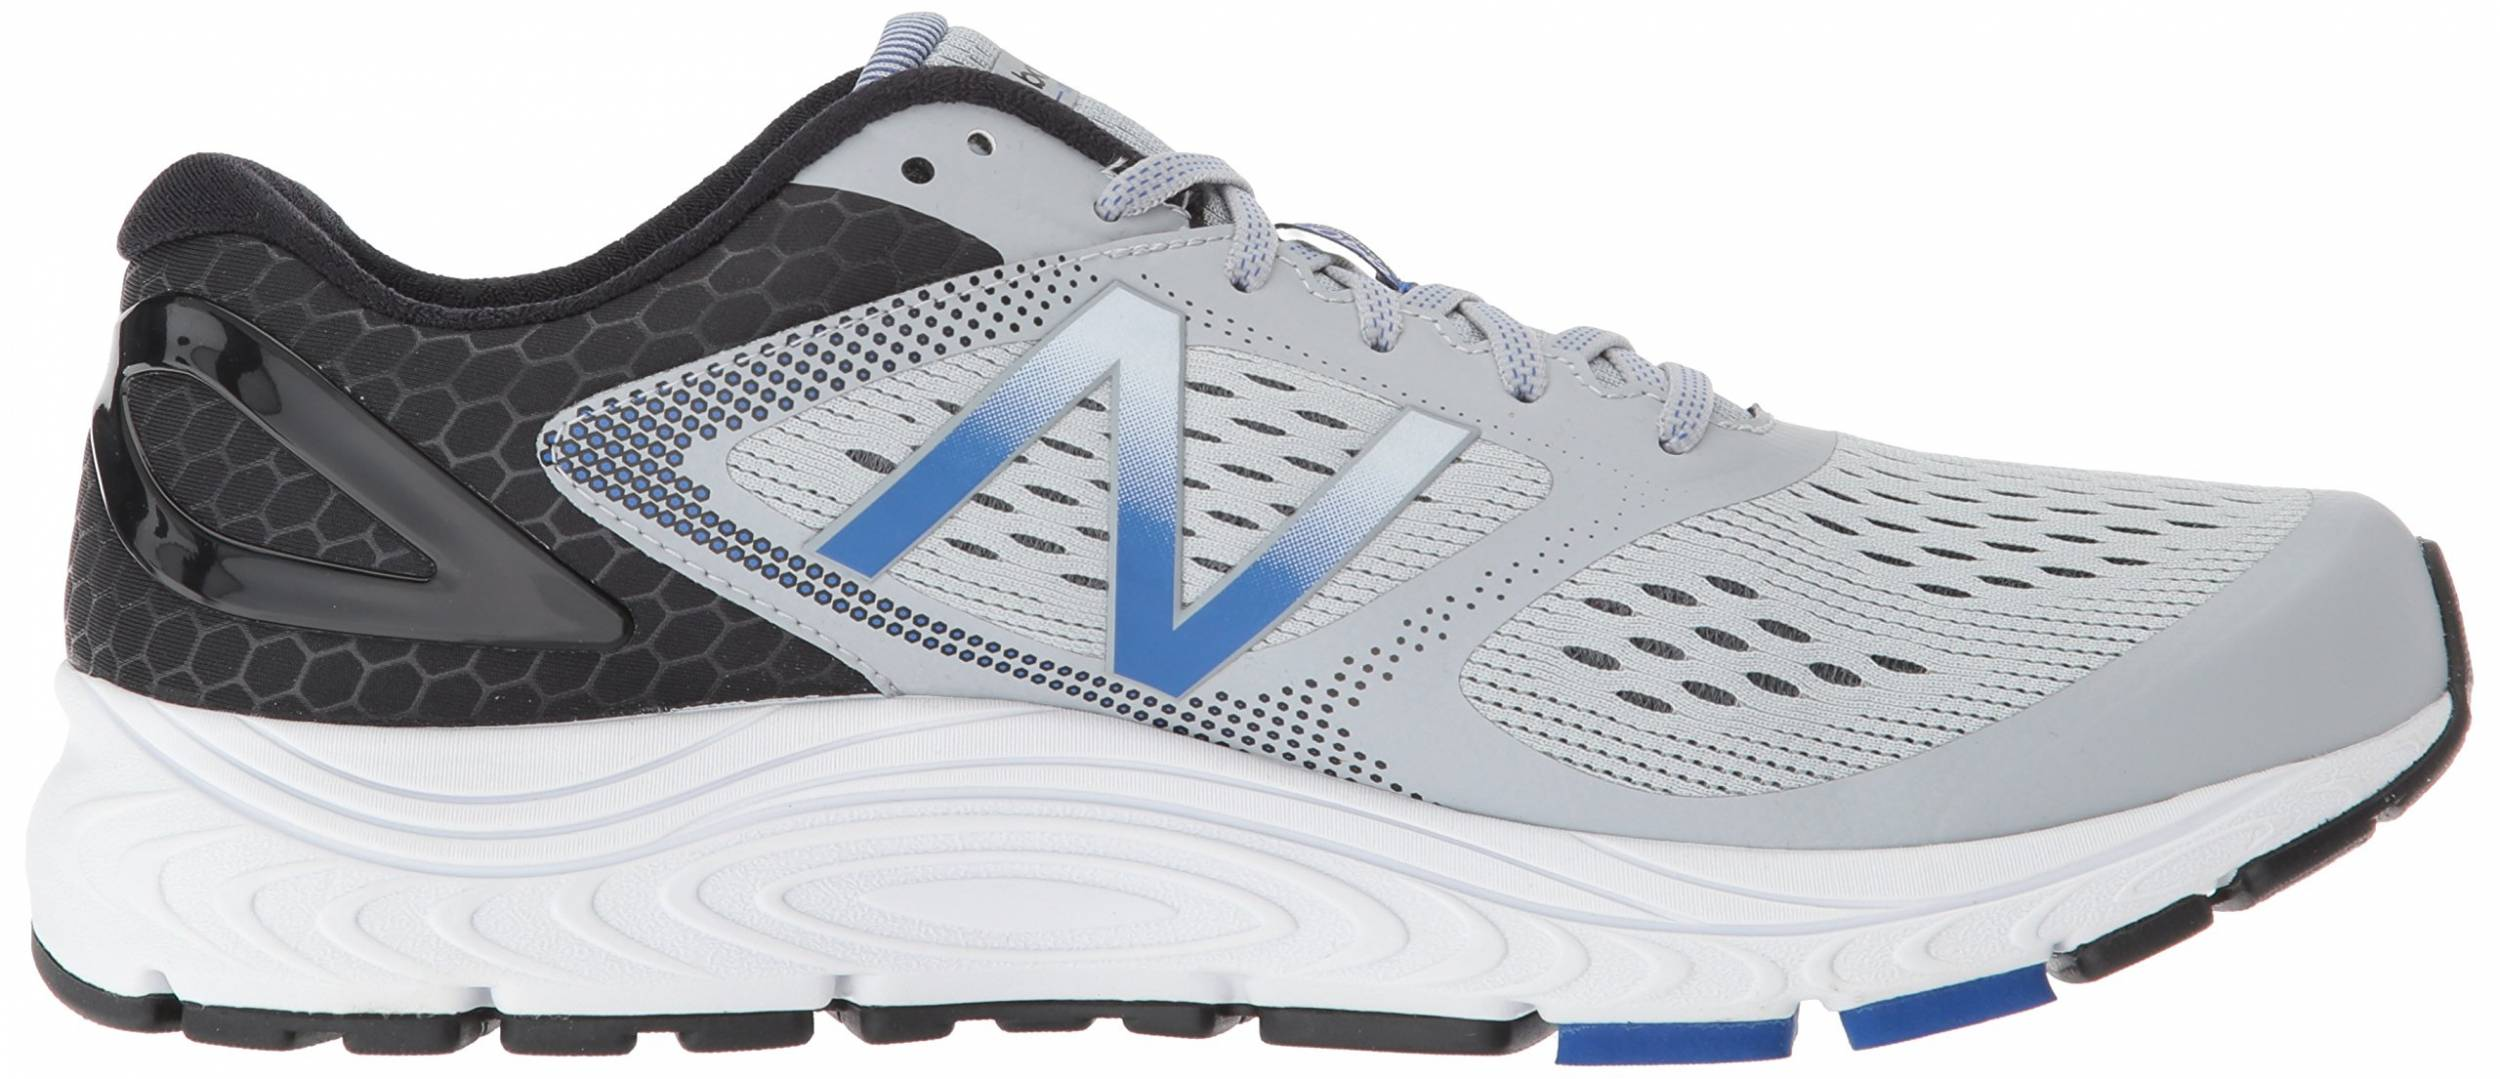 $125 + Review of New Balance 840 v4